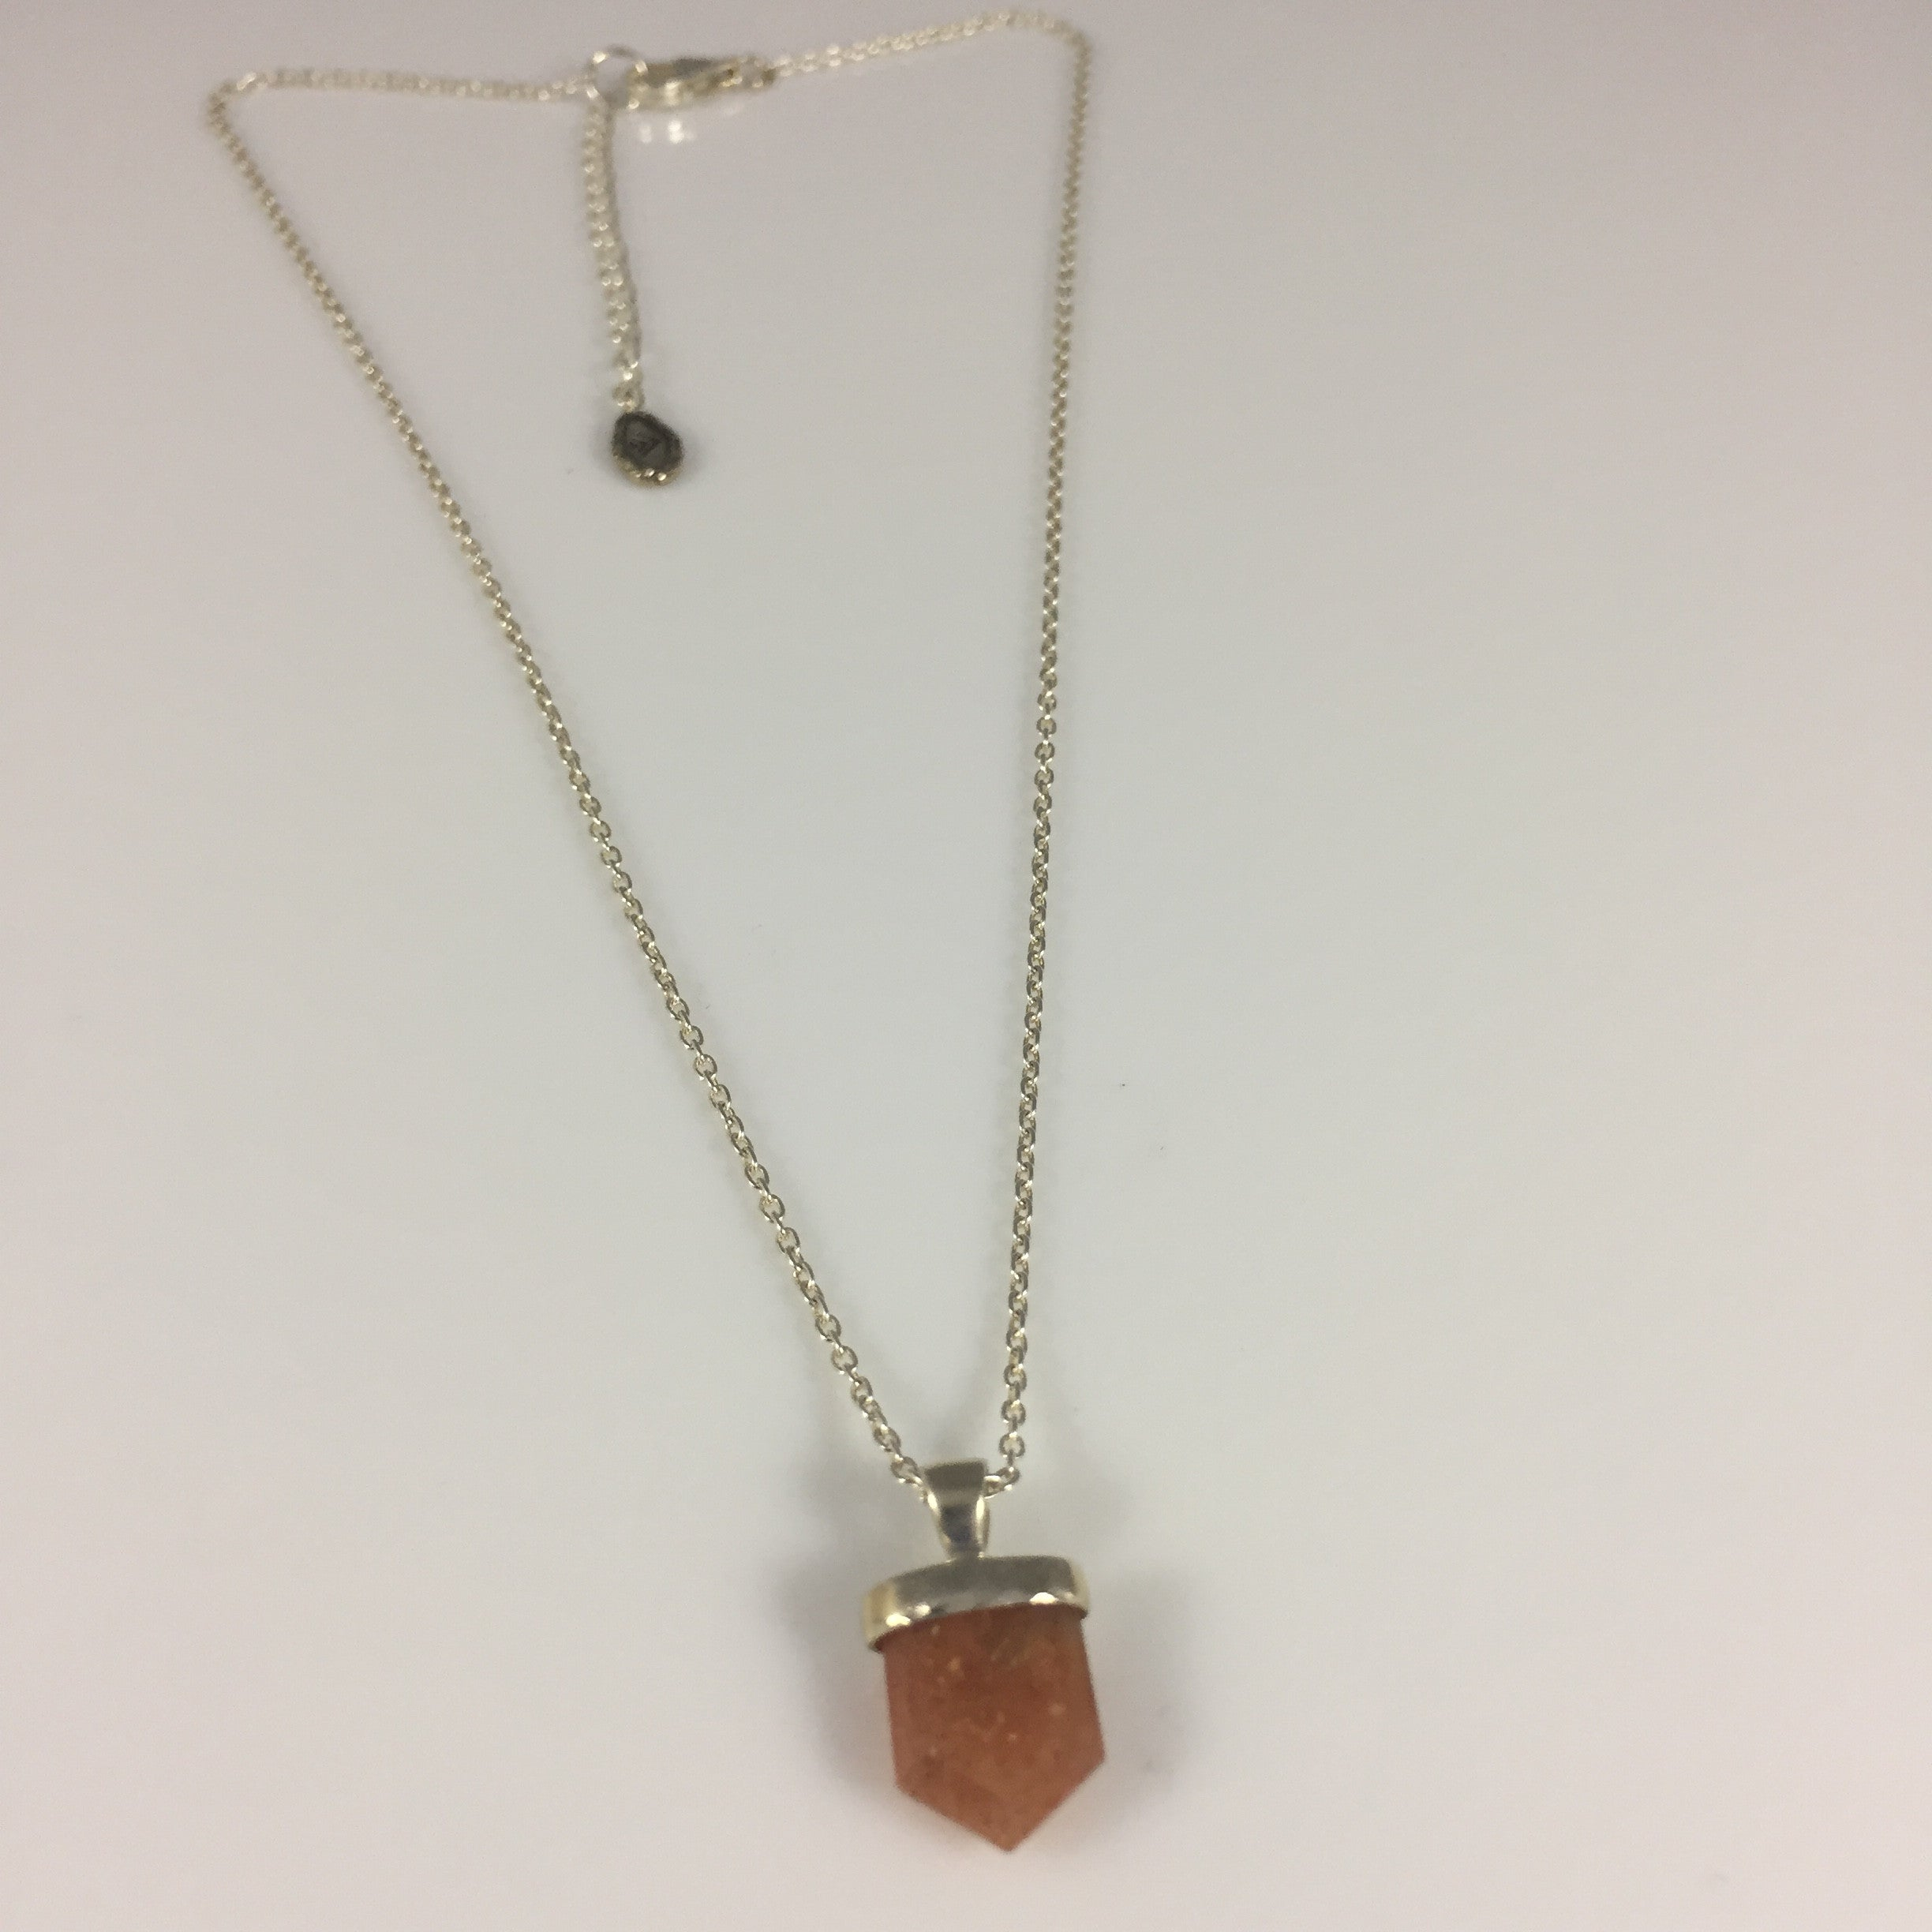 sunstone t fabrication img more kb jewelry oregon platinum pendant